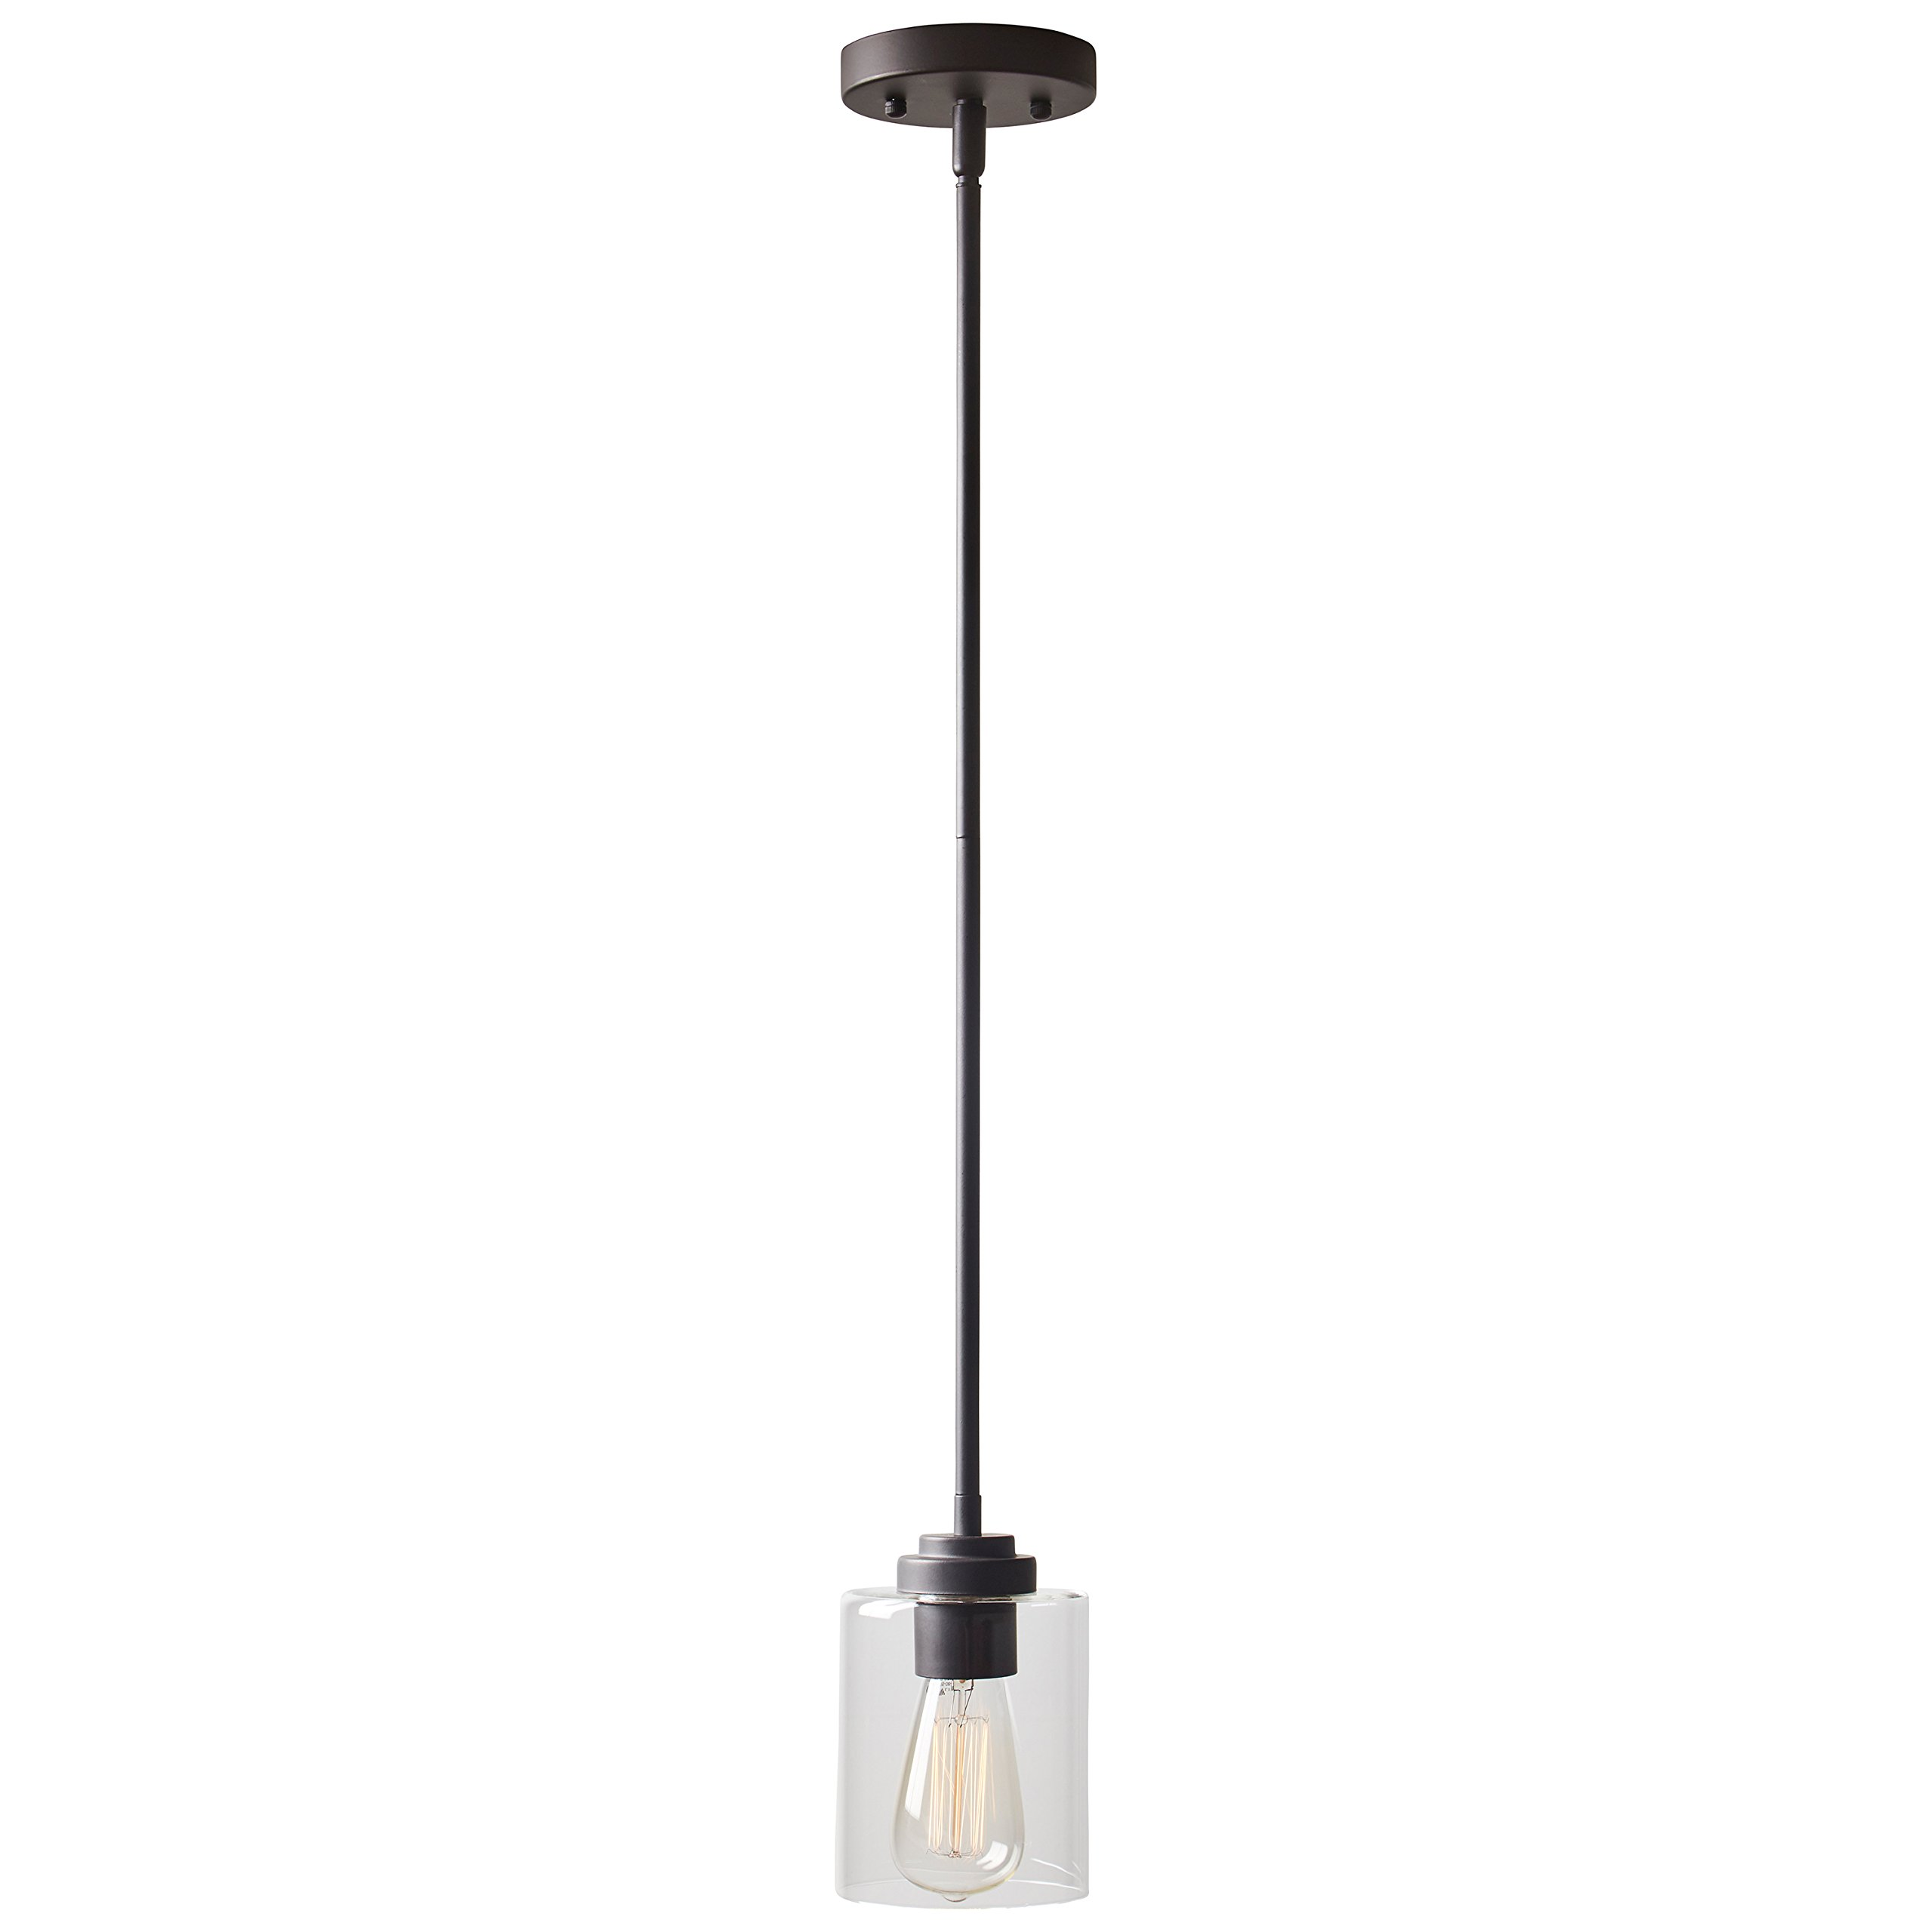 Stone & Beam Modern Cylinder Pendant Light with Bulb, 10''-58'' H, Oil-Rubbed Bronze